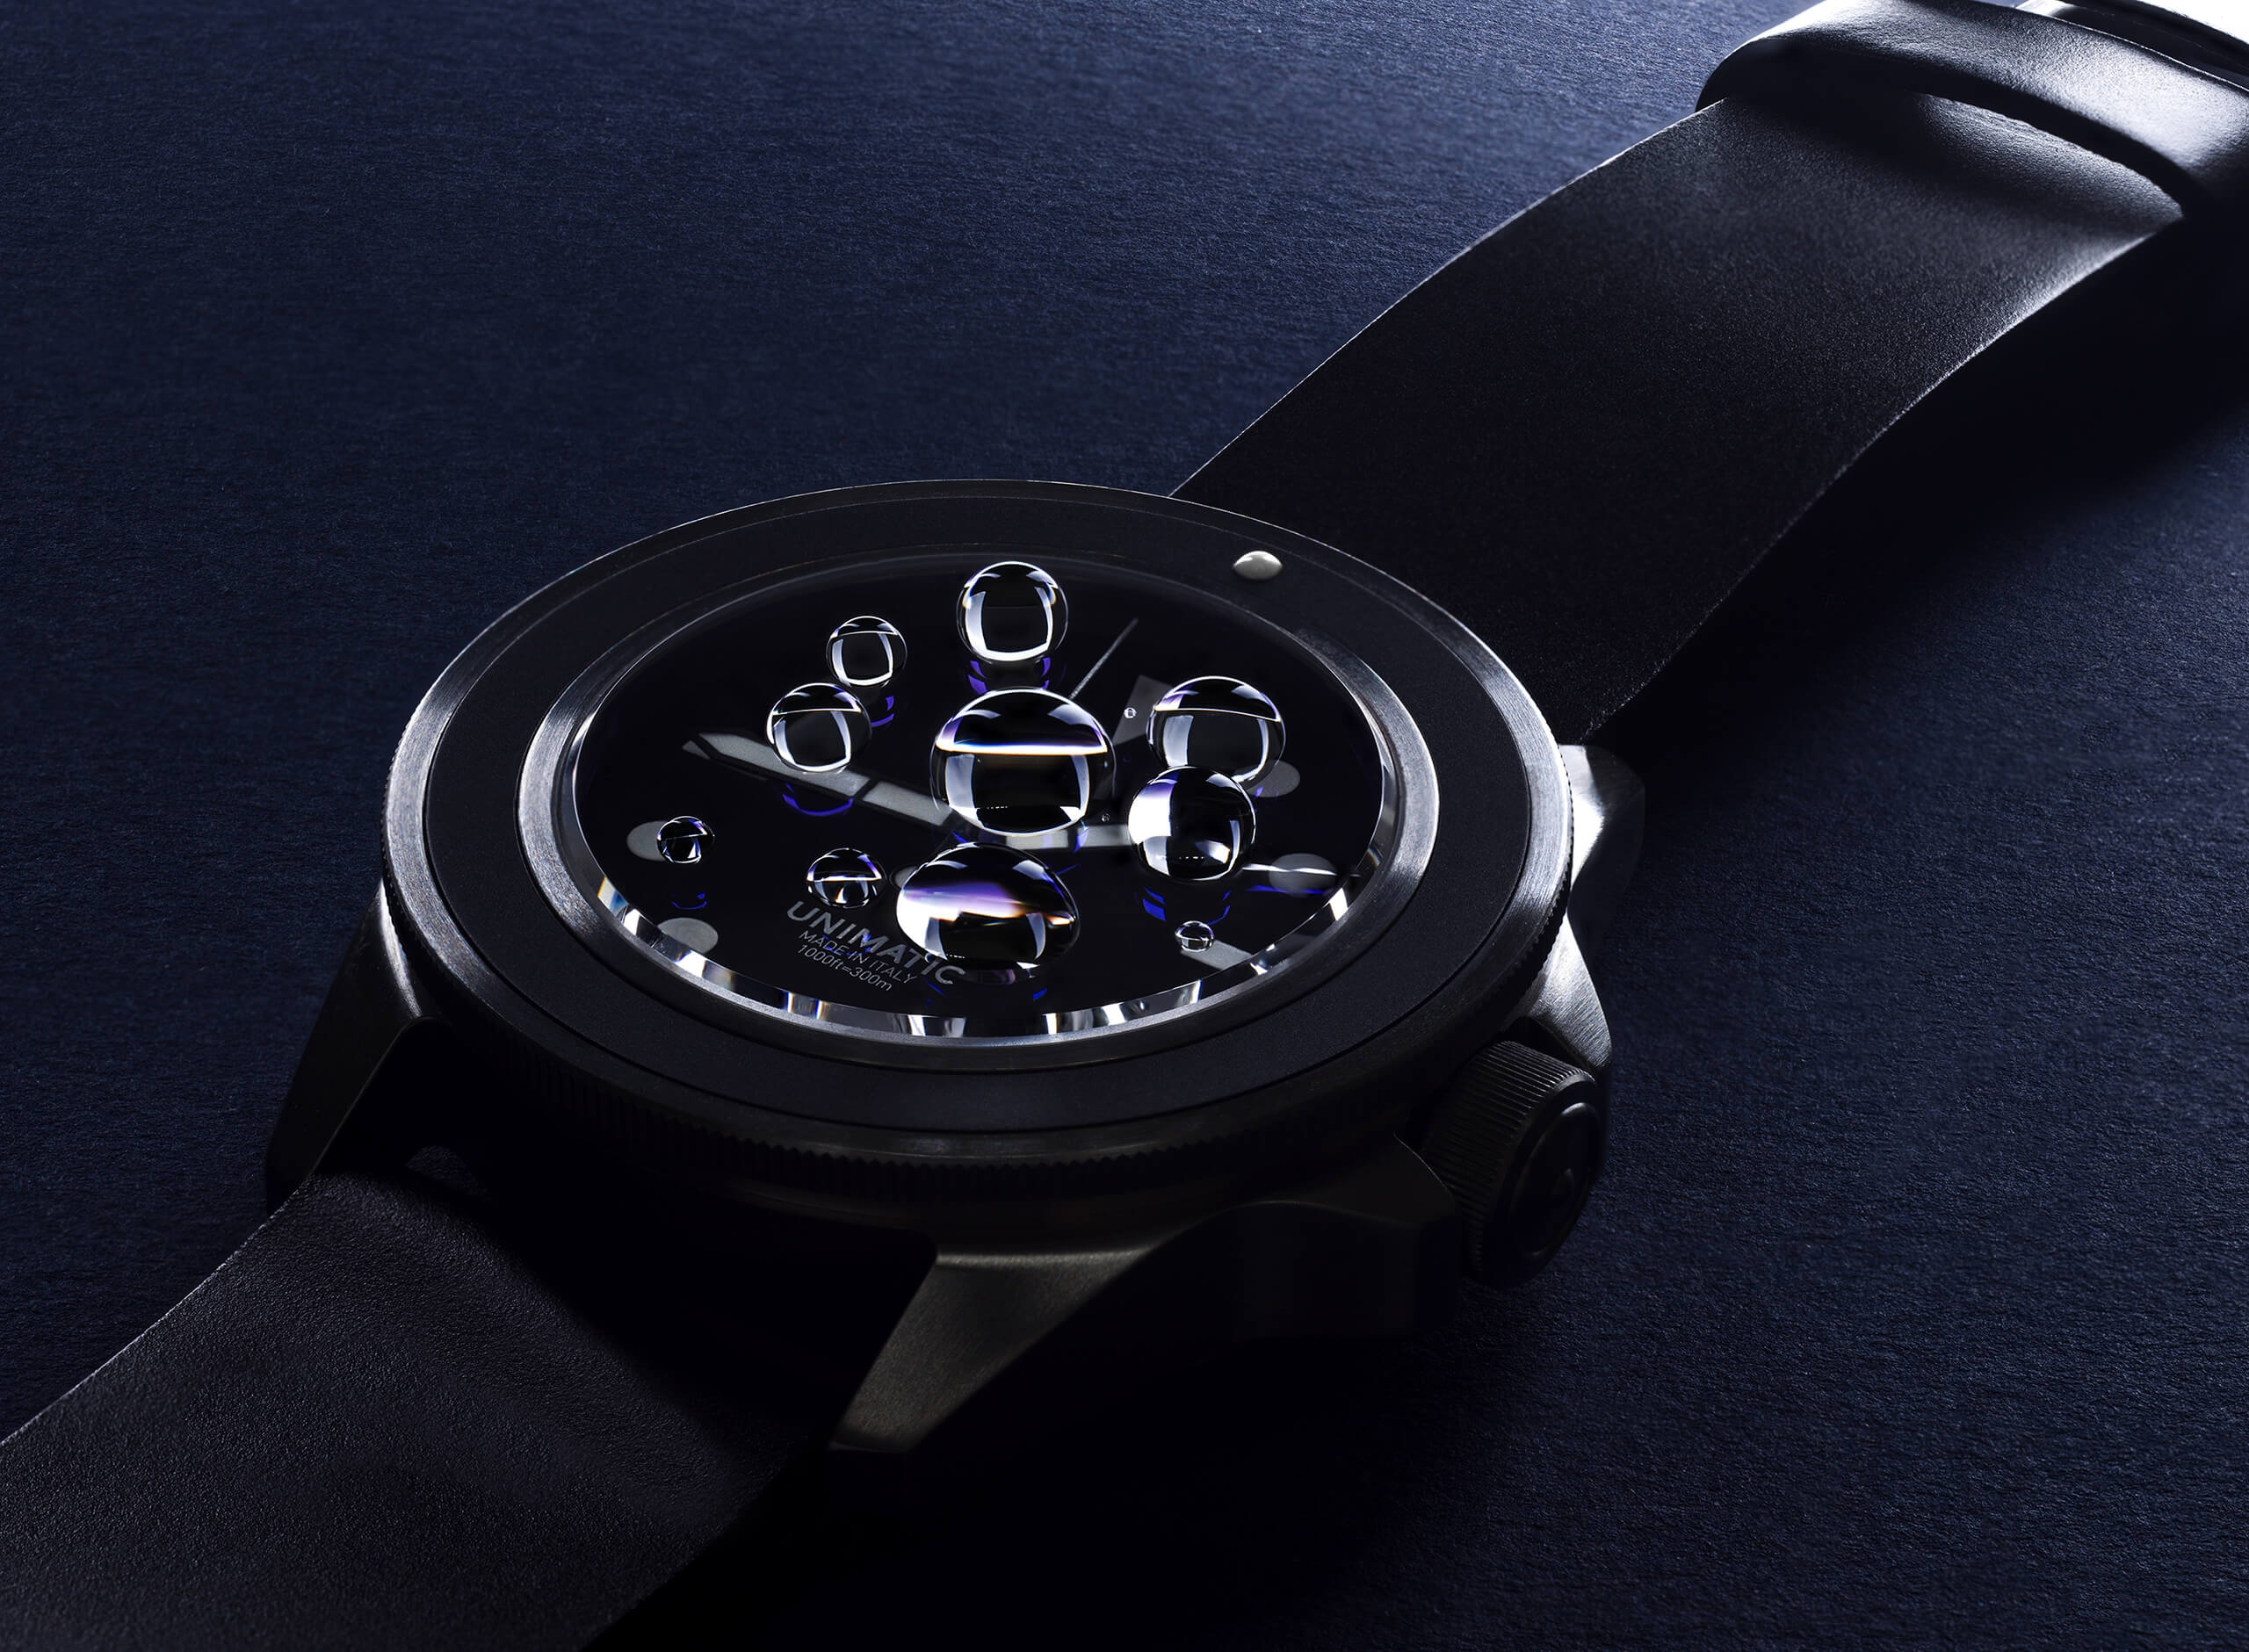 Unimatic Watches | Capturing the Details of Timepieces Unseen by the Naked Eye